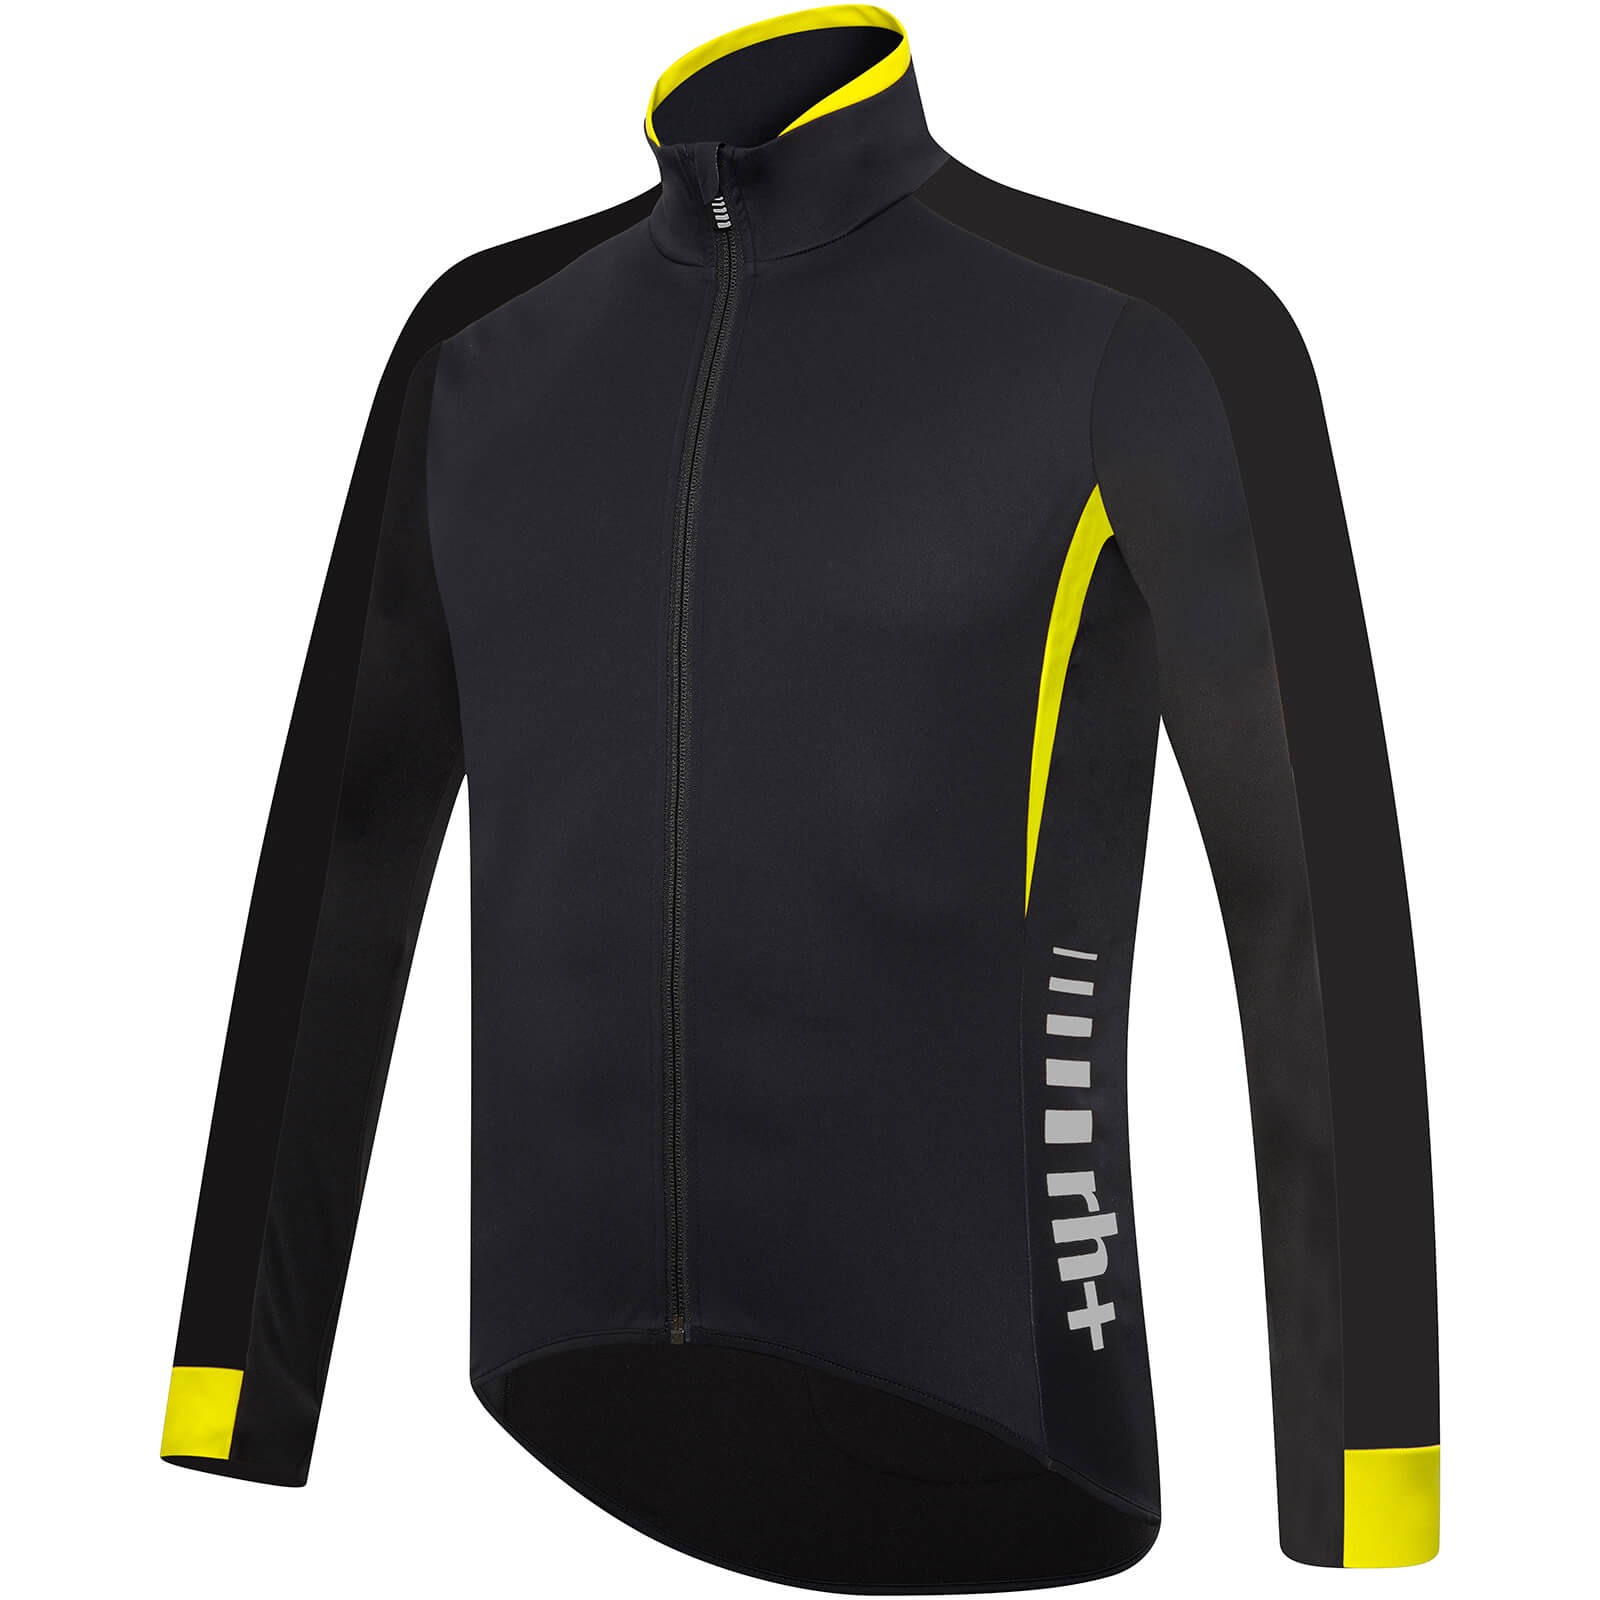 RH+ Shiver Jacket - Black/Fluo Yellow